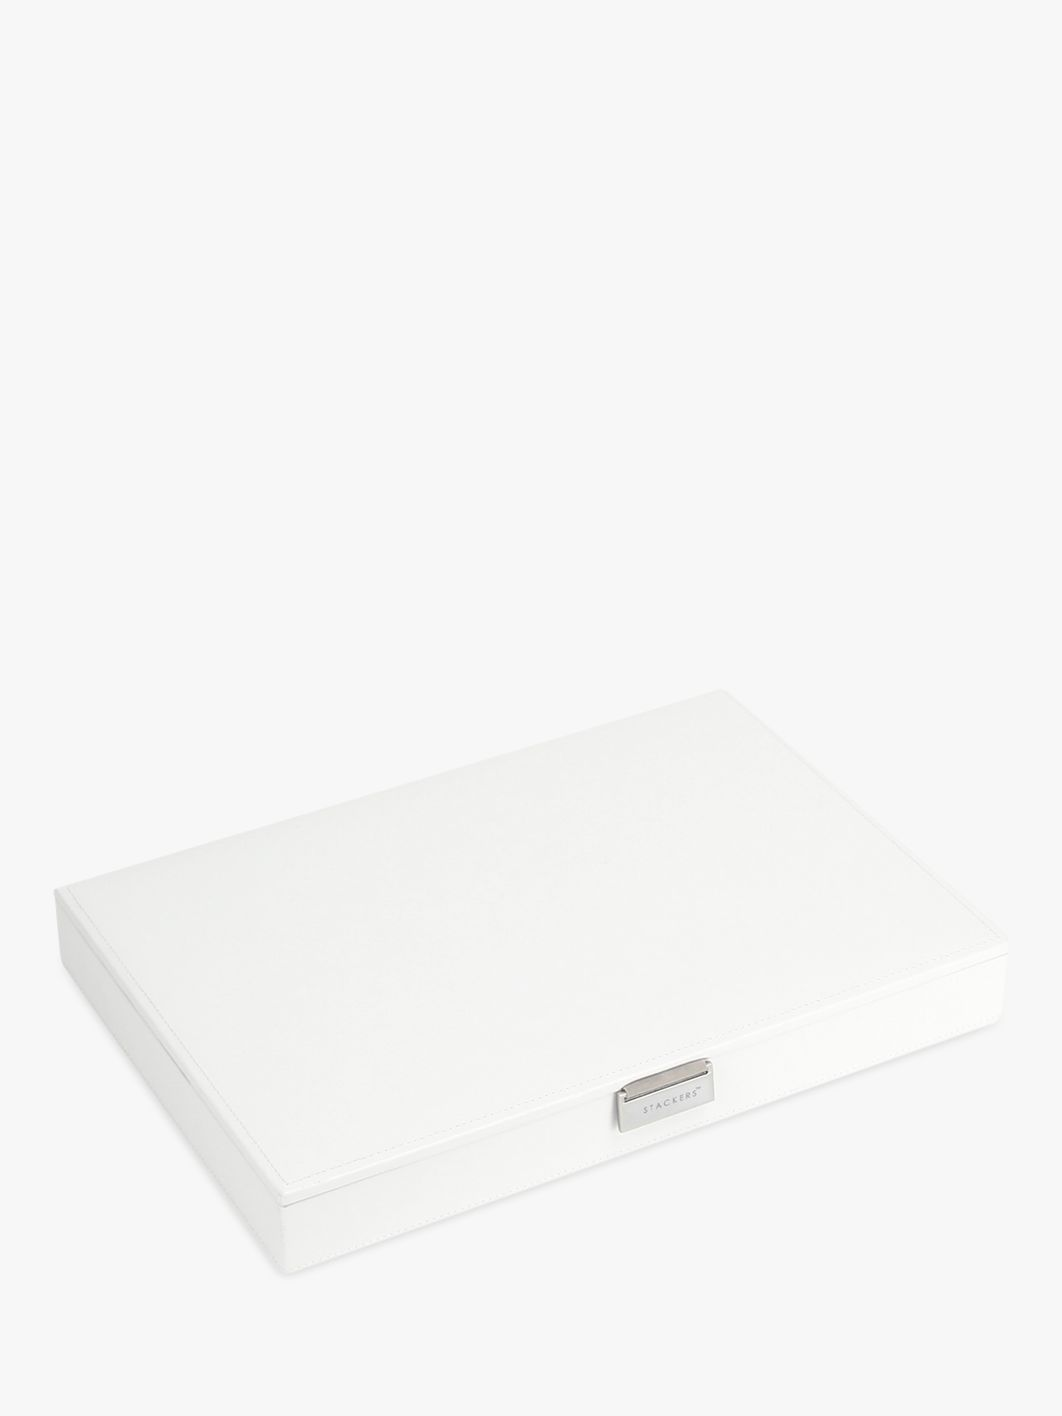 Stackers Stackers Supersize Jewellery Box Lid, White